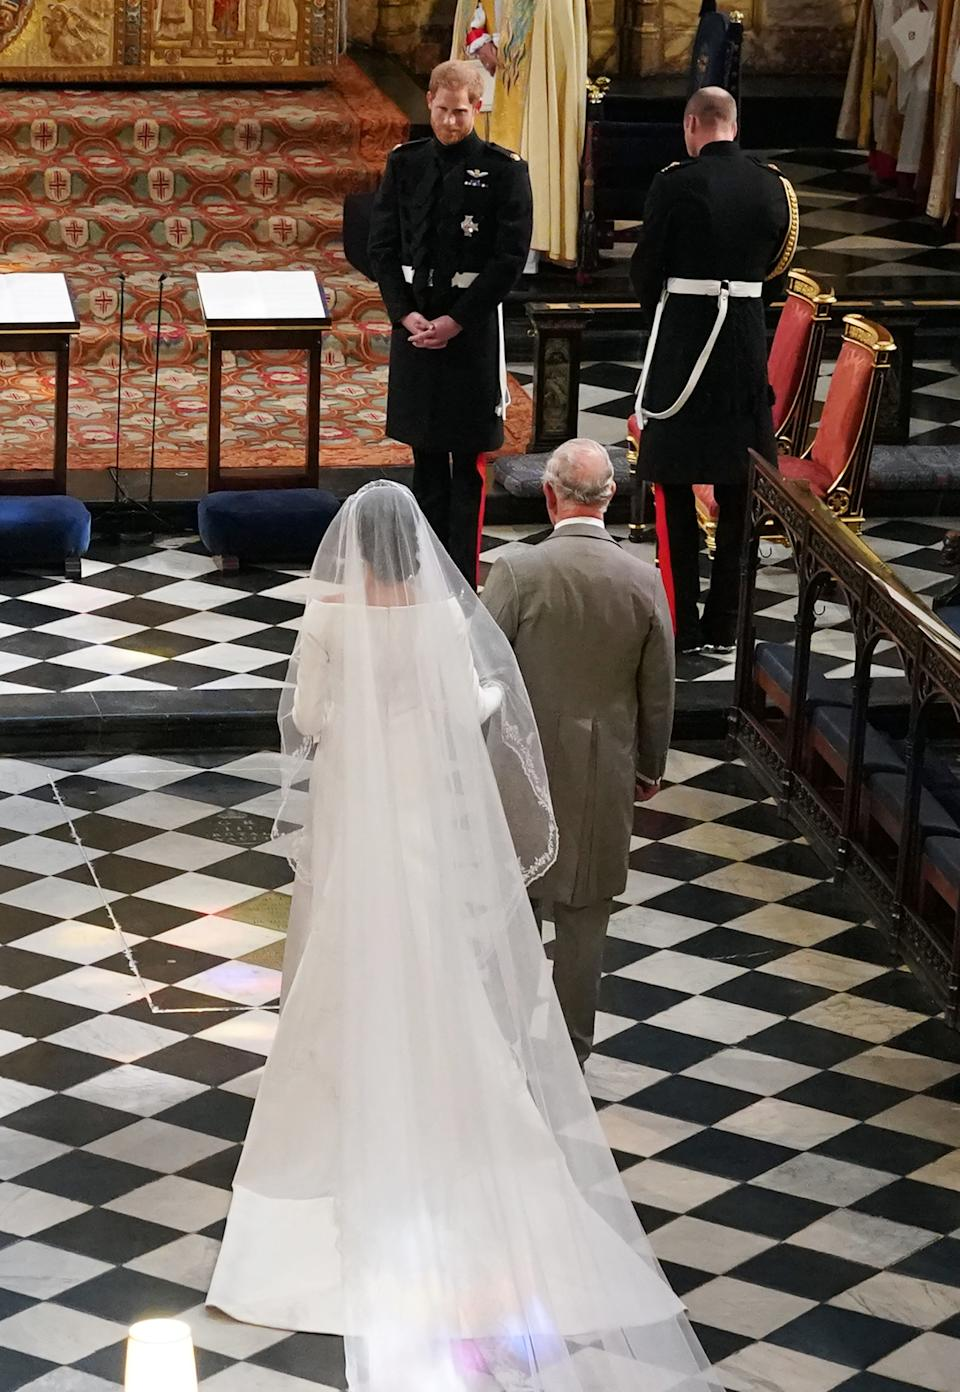 <p>In the days before the wedding it became clear Meghan's father would not be able to attend - so Charles stepped in to walk her down the aisle. (Owen Humphreys - WPA Pool/Getty Images)</p>